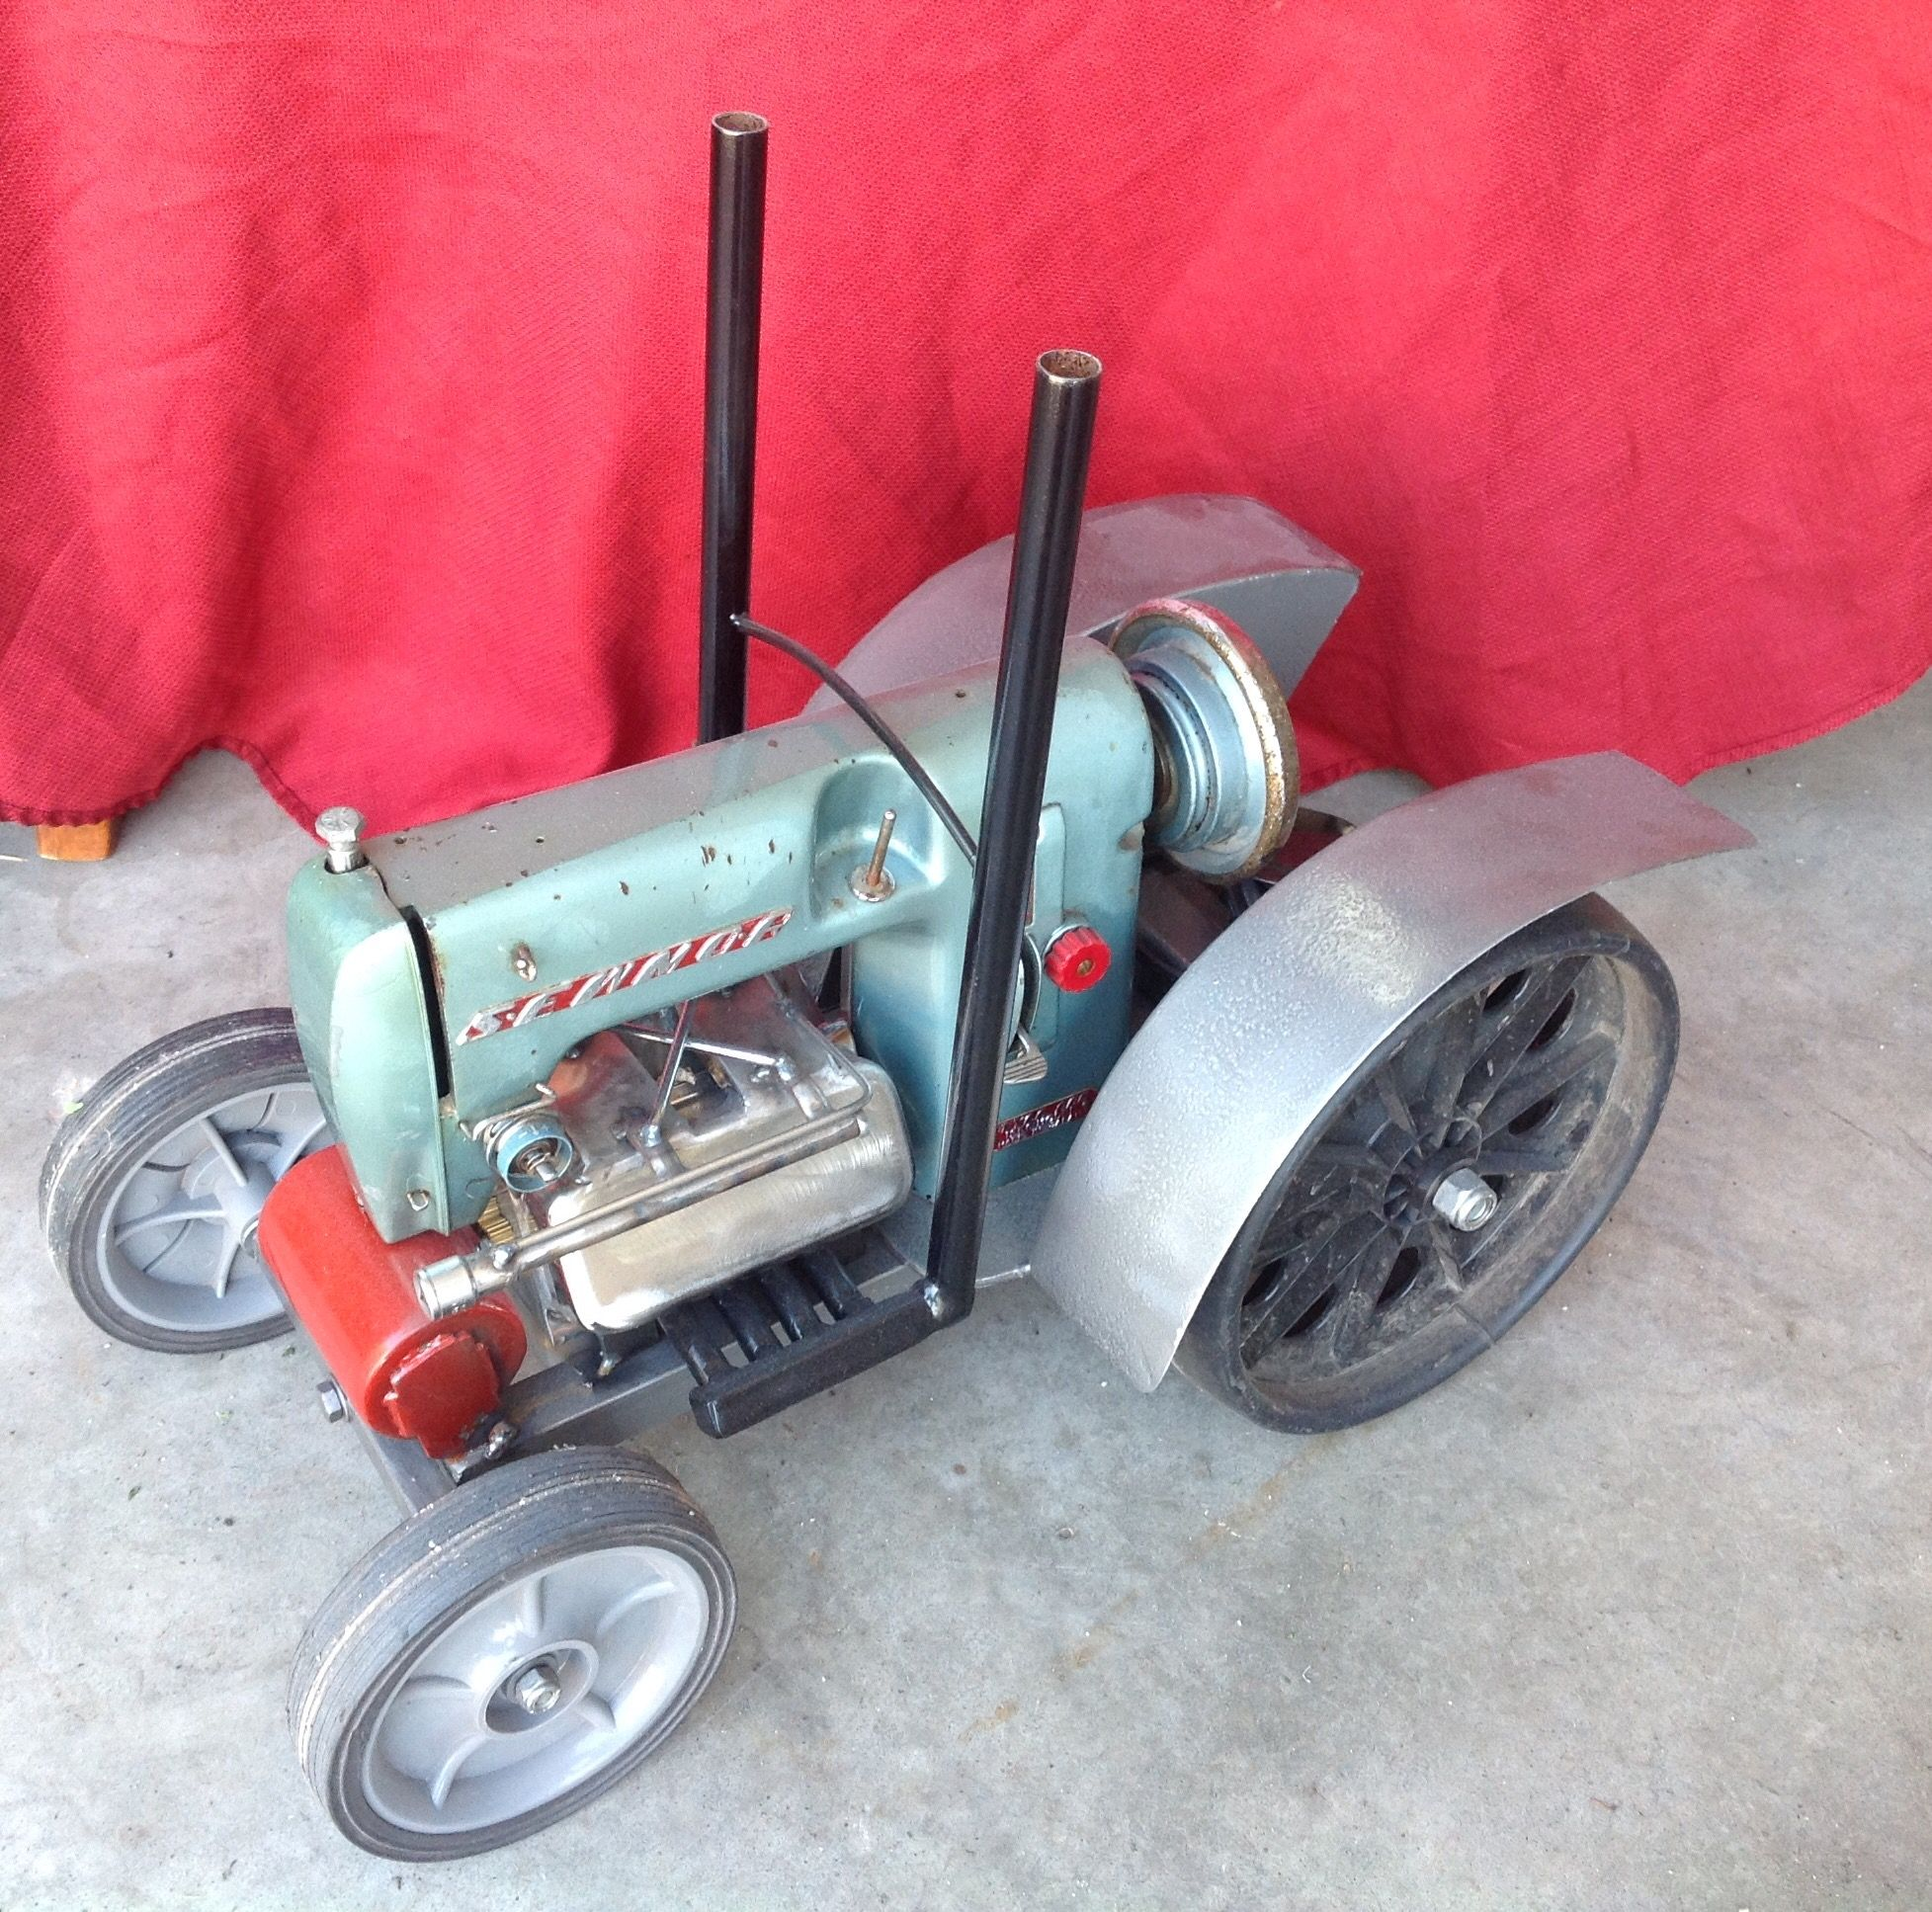 Tractor made with old sawing machine and other odds and ends